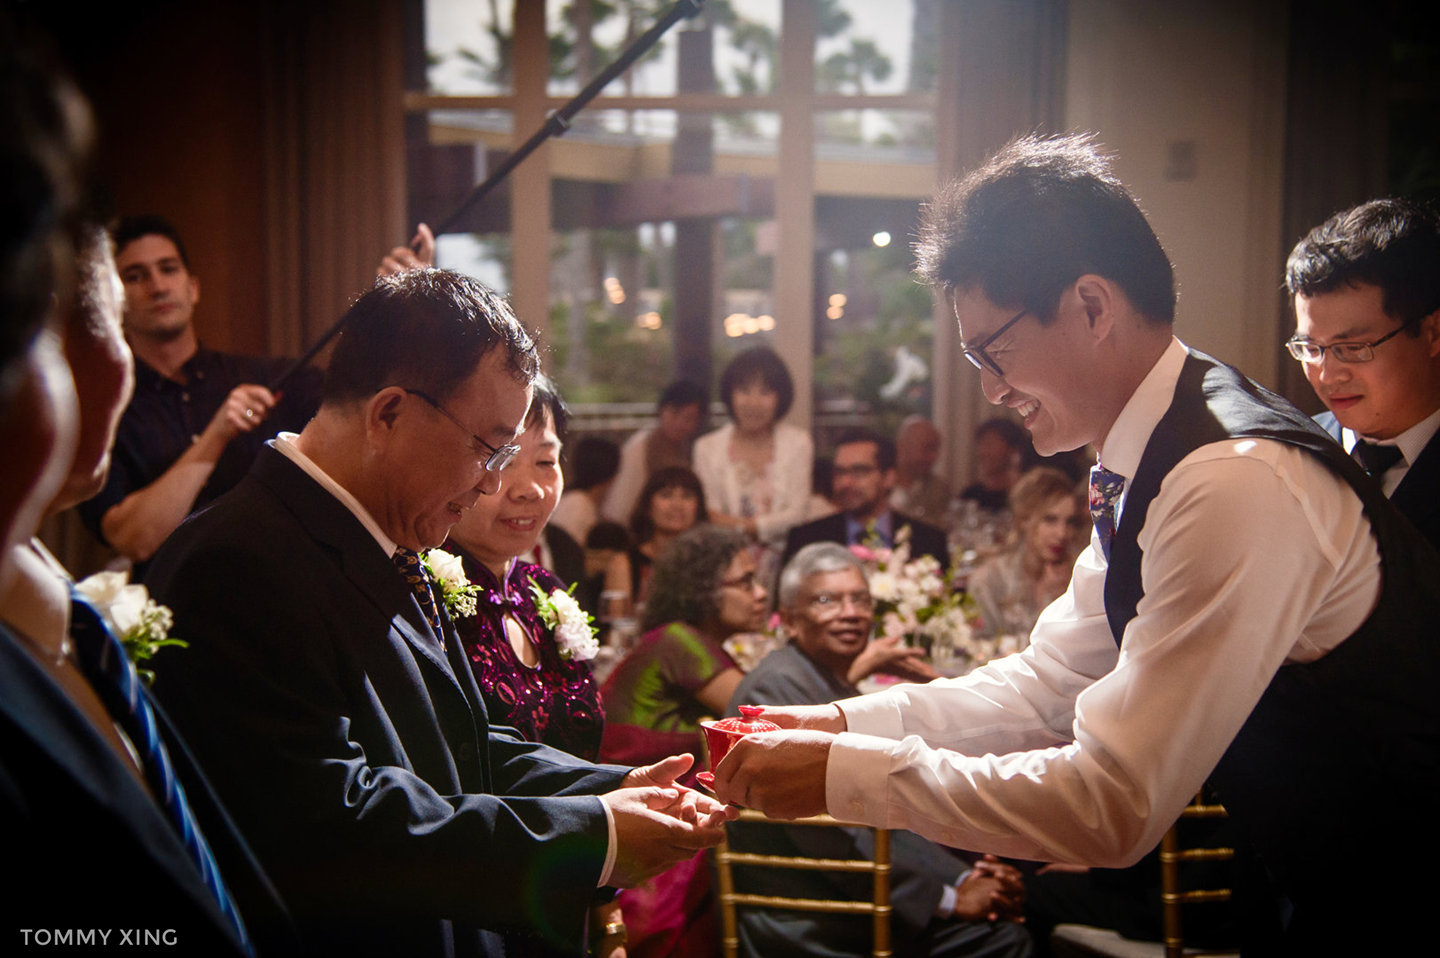 Paradise Point Resort Wedding Xiaolu & Bin San Diego 圣地亚哥婚礼摄影跟拍 Tommy Xing Photography 洛杉矶婚礼婚纱照摄影师 265.jpg